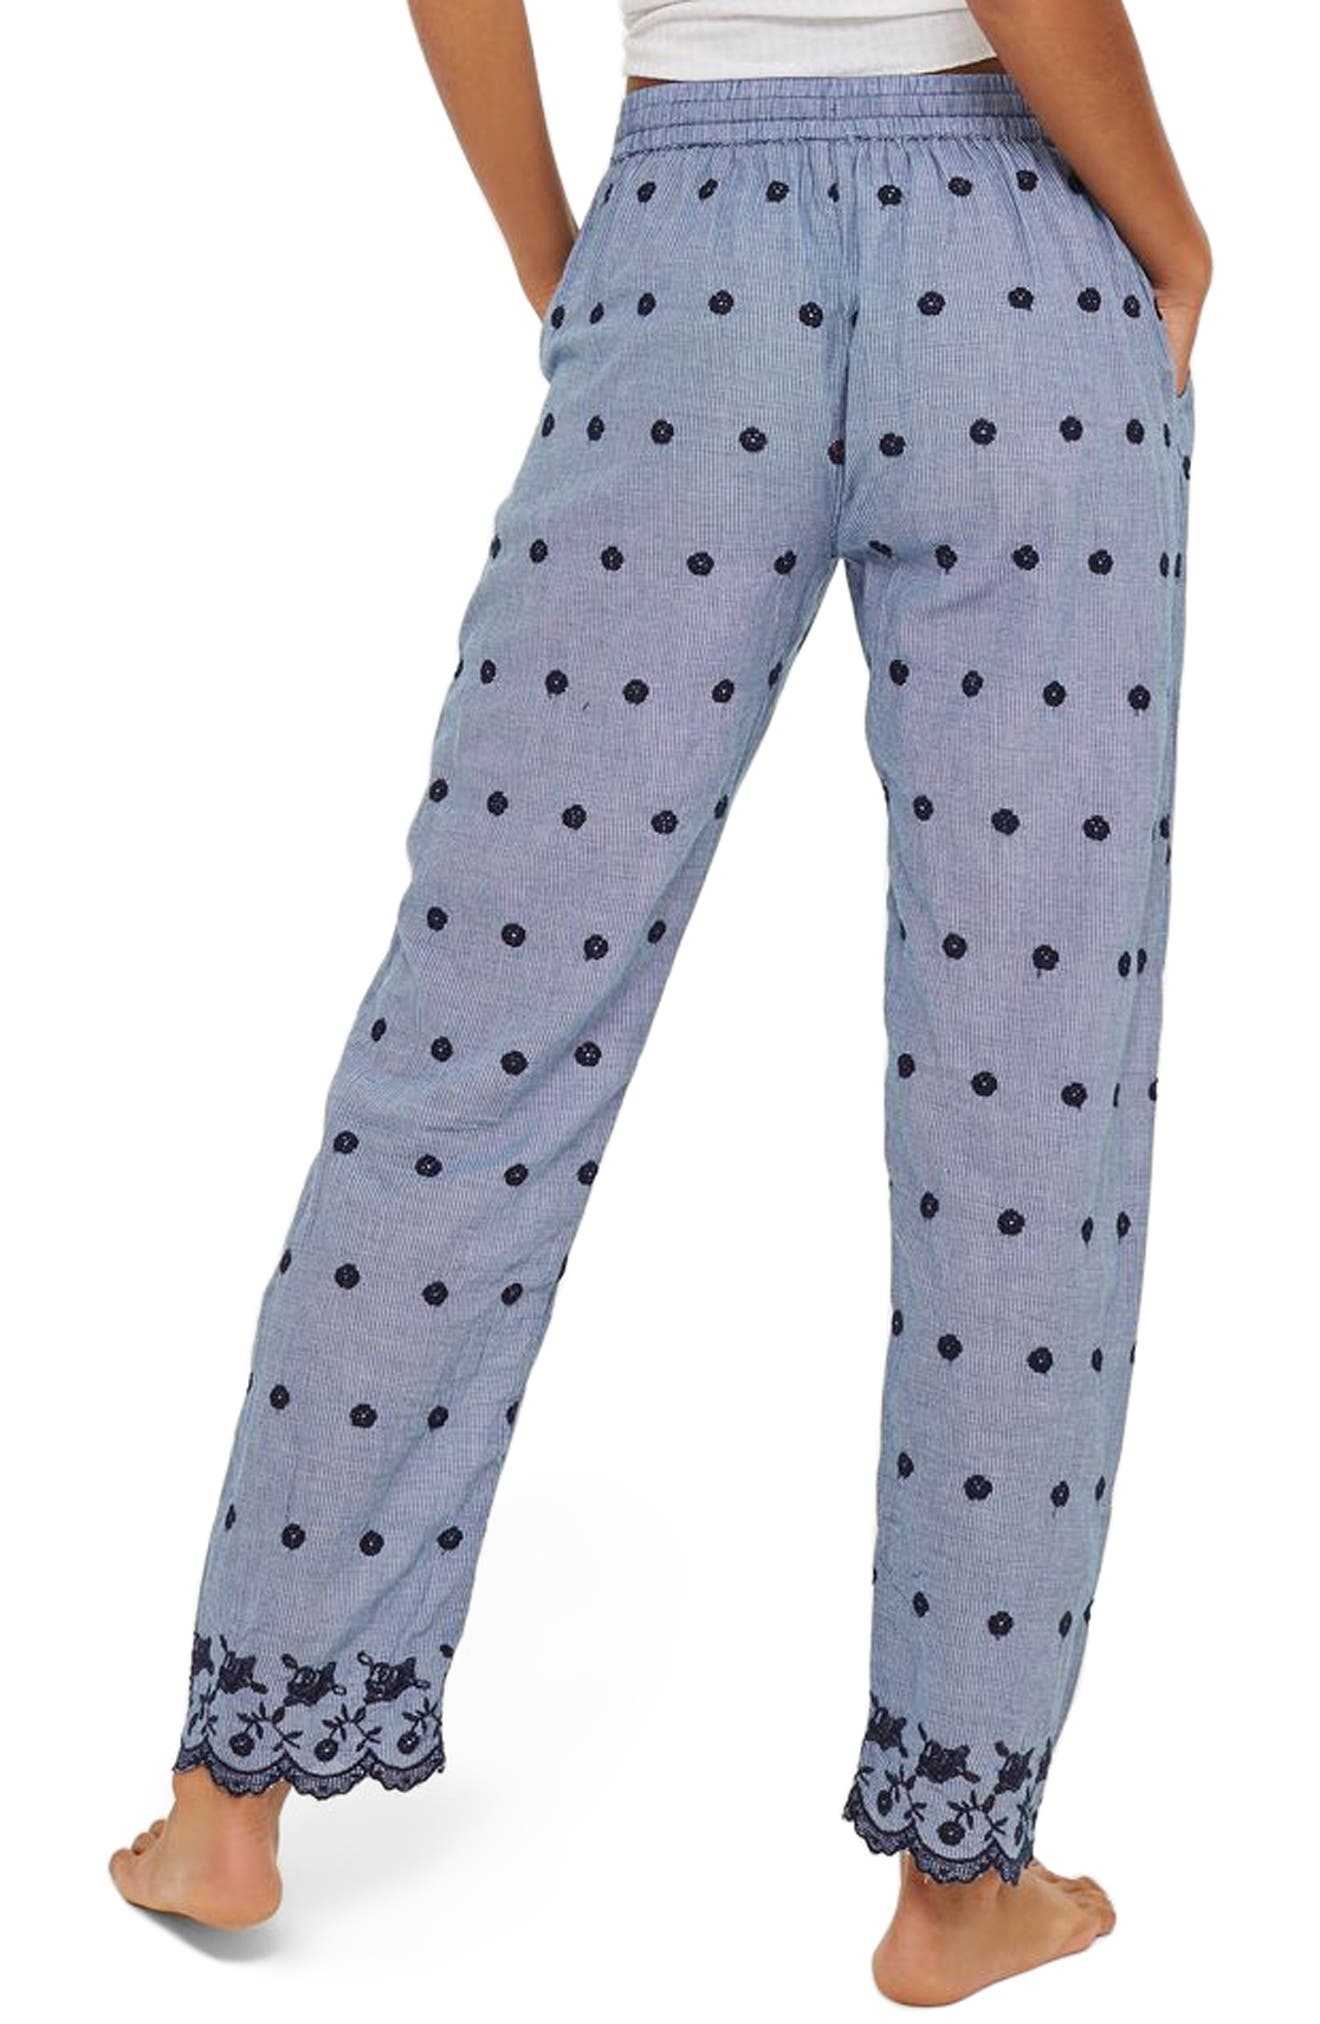 Embroidered Gingham Pajama Pants,                             Alternate thumbnail 2, color,                             410